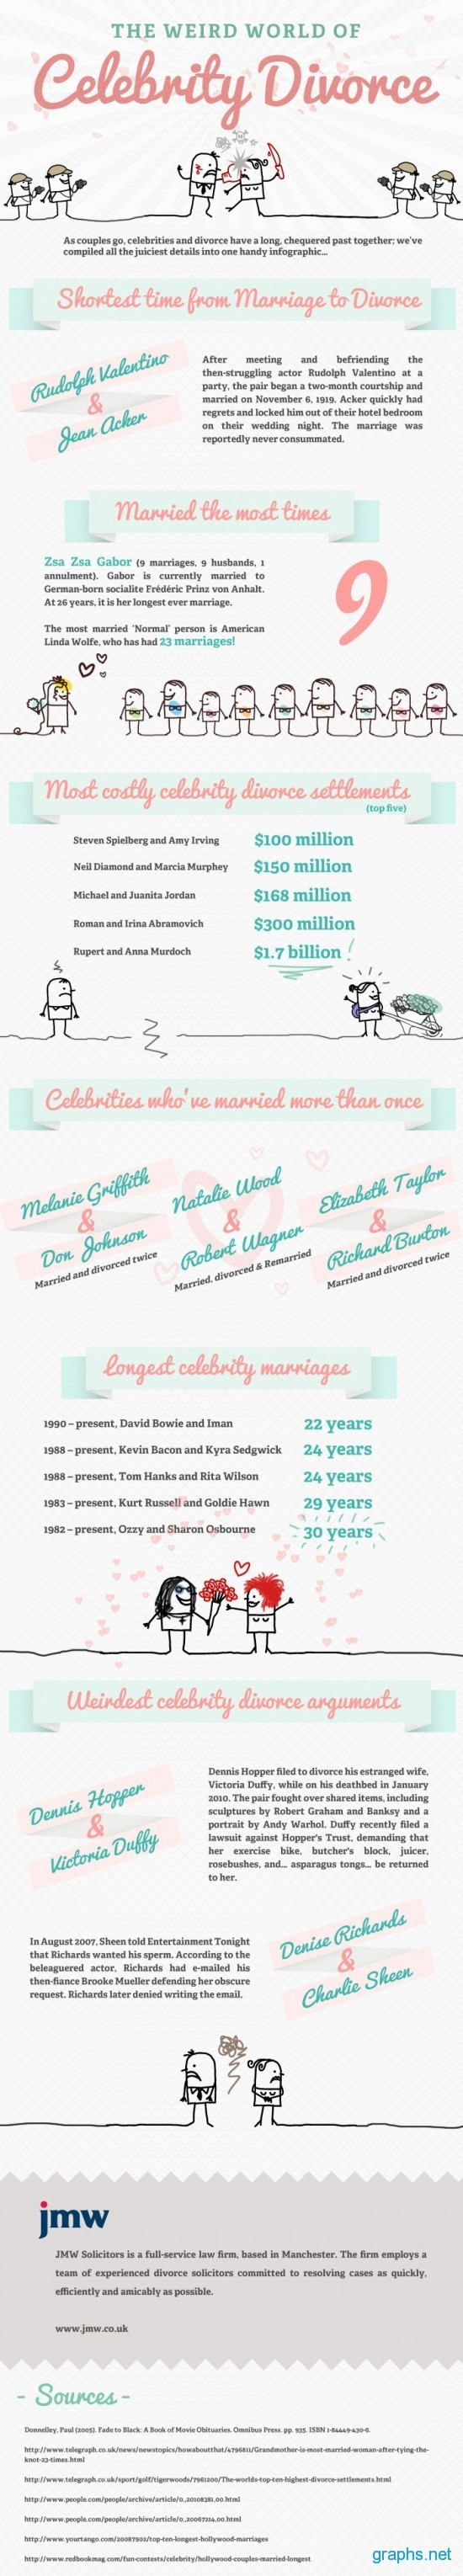 Celebrity Marriage and Divorce Facts